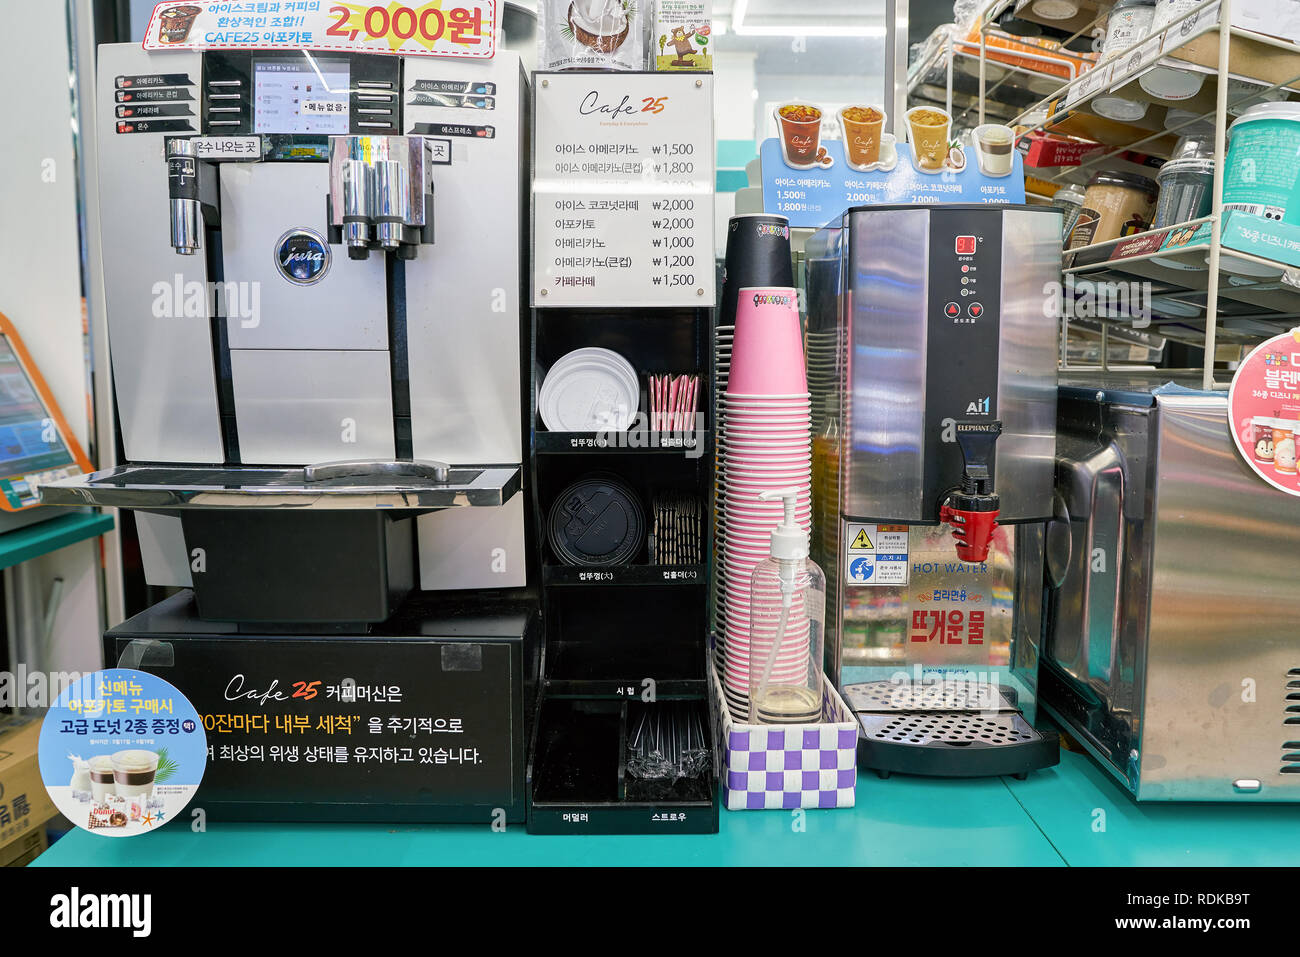 SEOUL, SOUTH KOREA - CIRCA MAY, 2017: coffee machine at GS25 convenience store in Seoul. GS25 is a convenience store brand in South Korea. Stock Photo